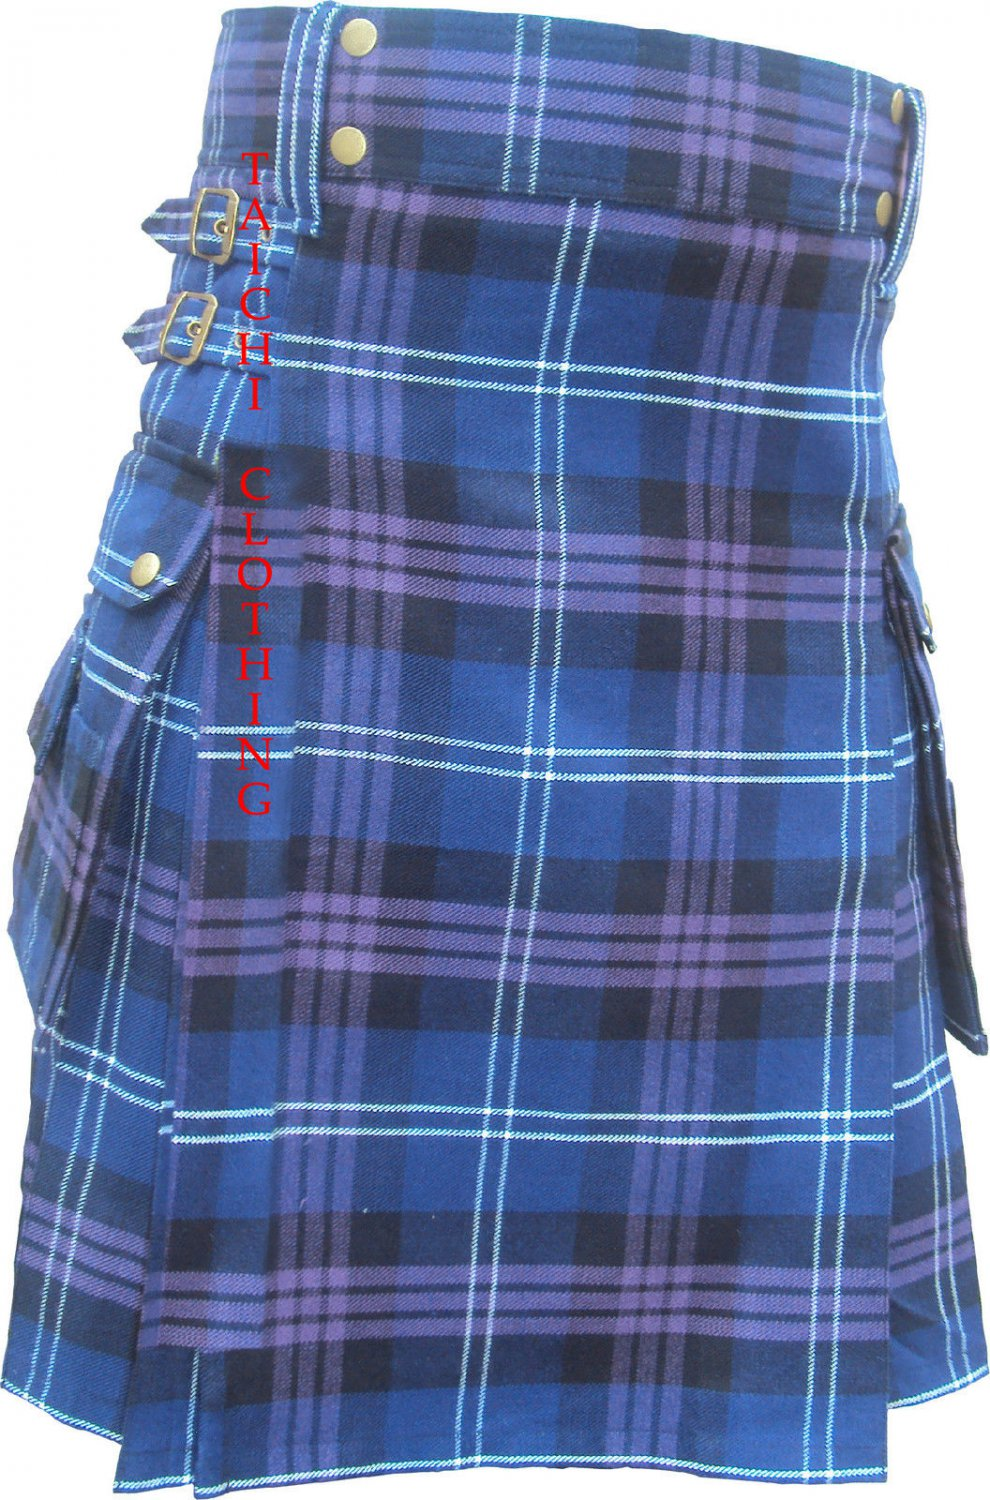 New 38 Size Scottish Highland Wear Active Men Heritage/Pride of Scotland Tartan Modern Pocket Kilt